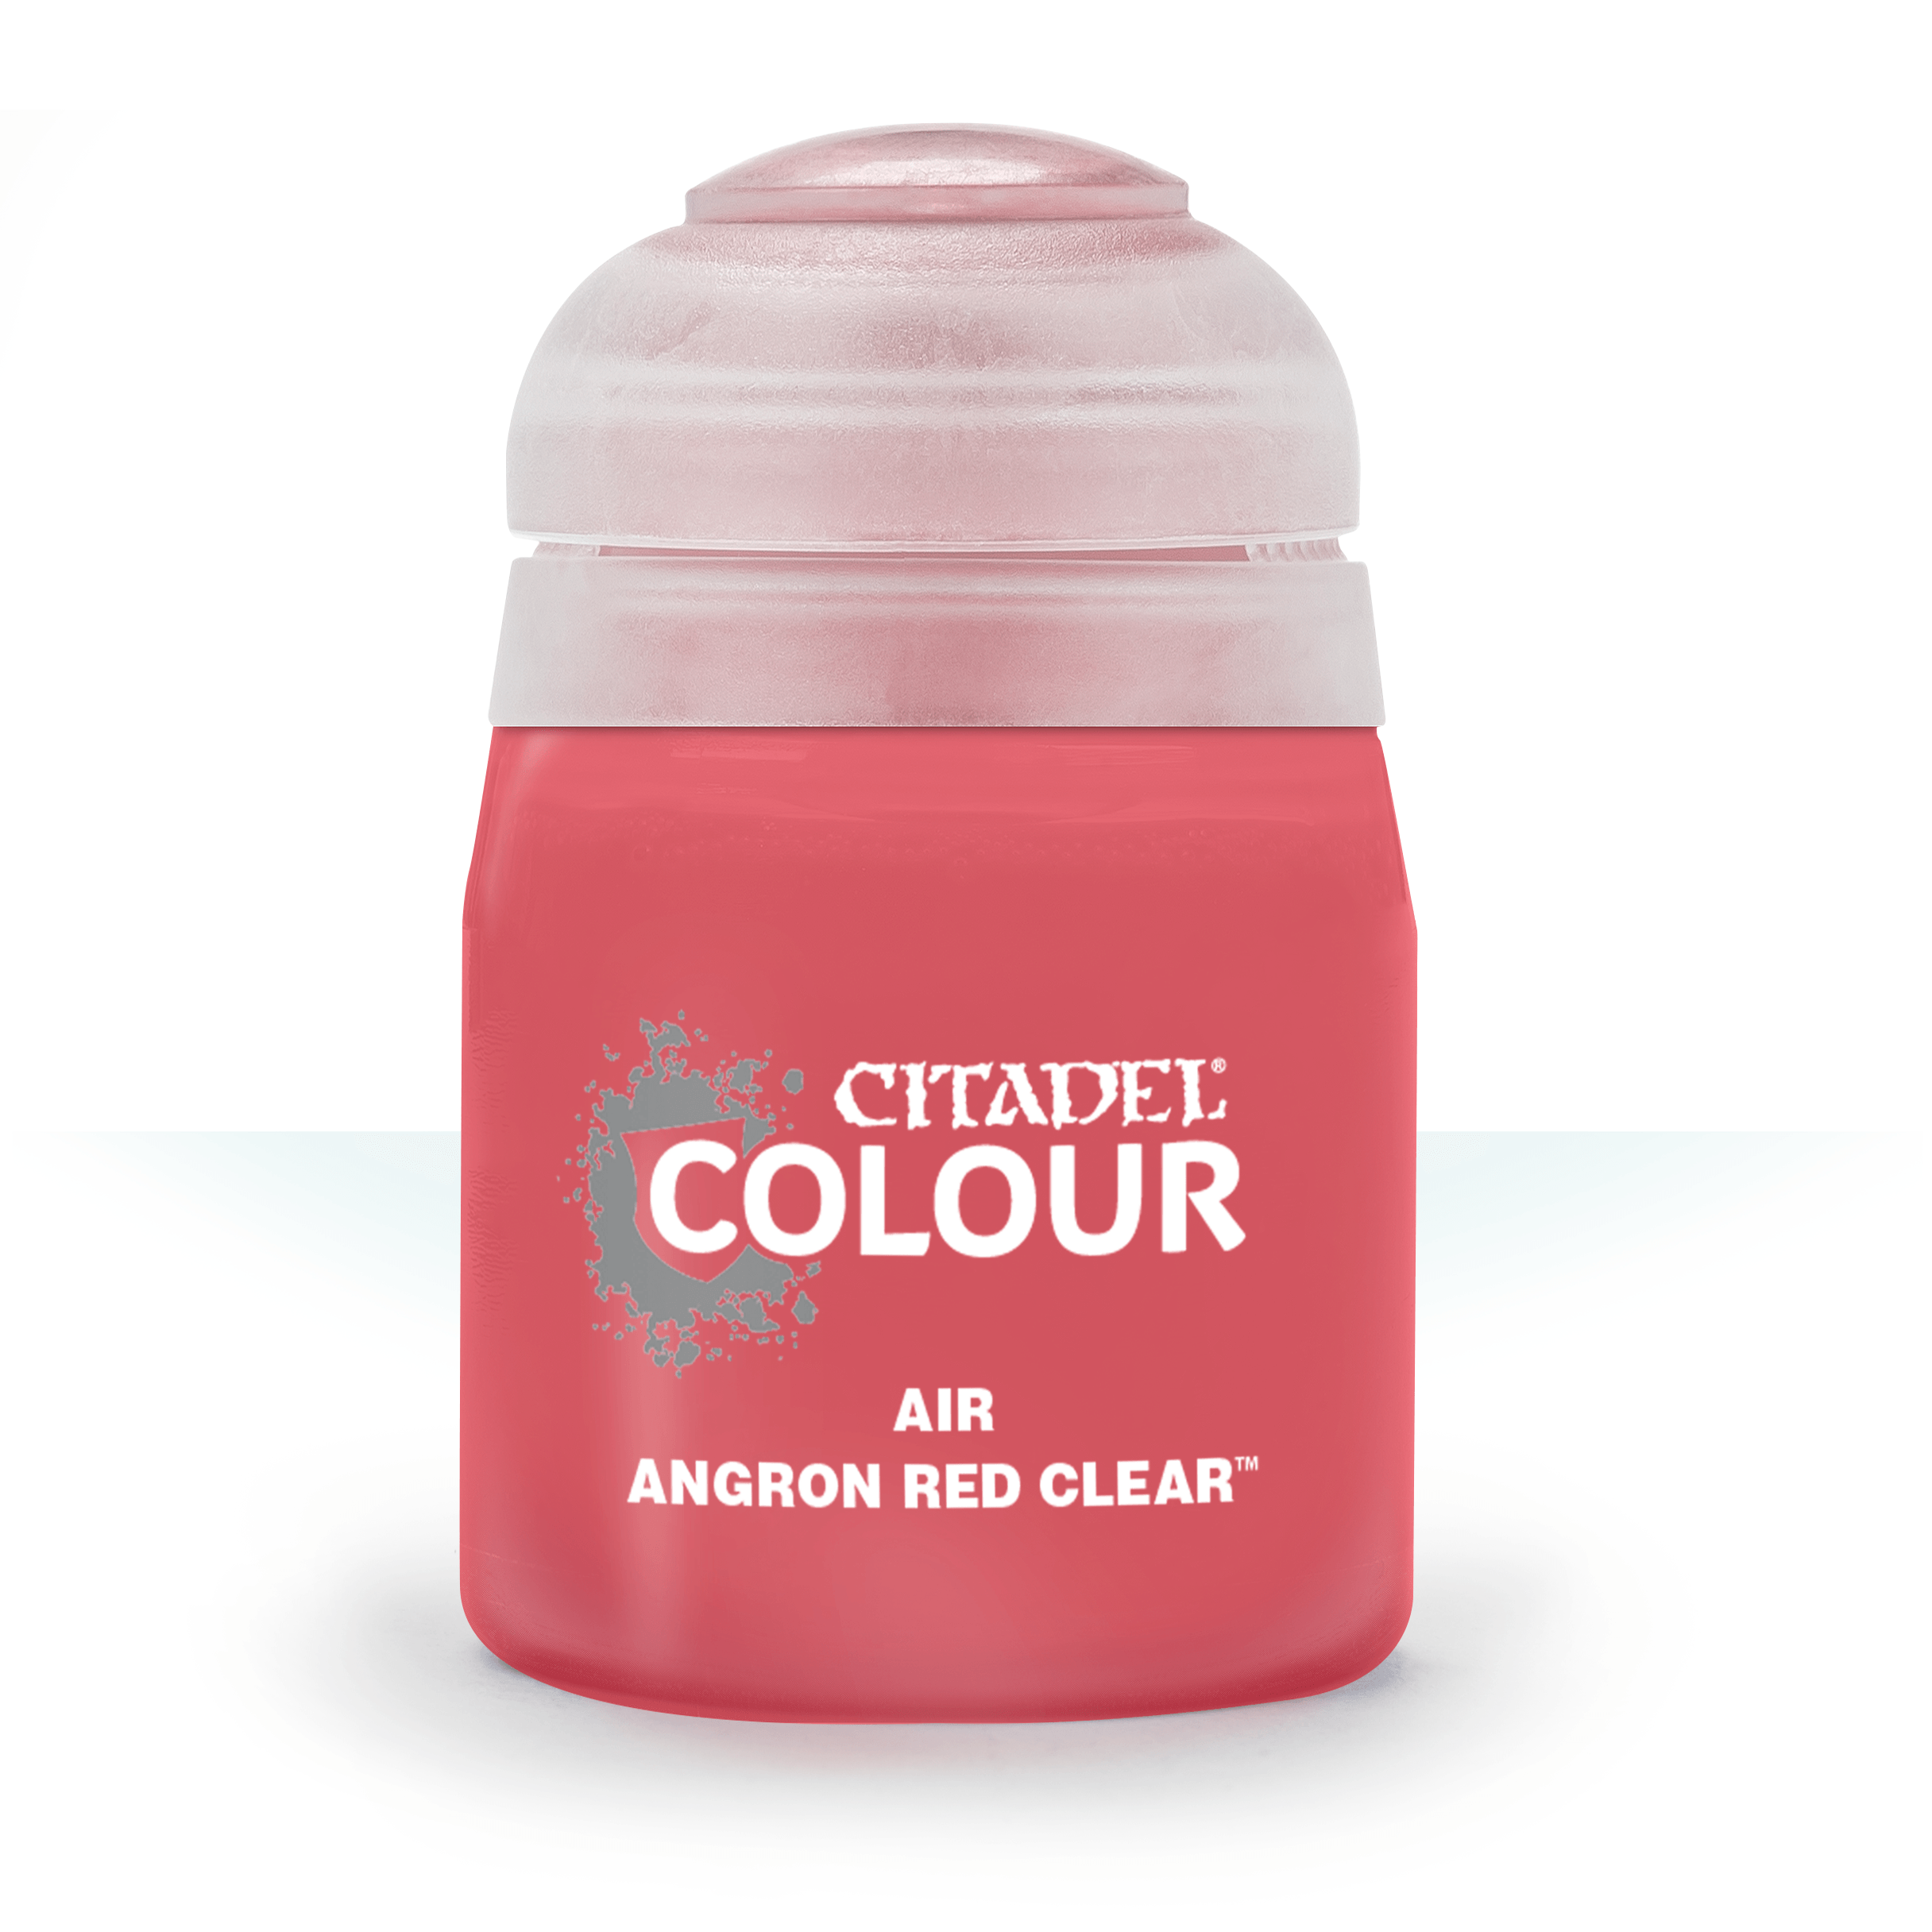 Angron Red Clear, Citadel Air 24ml